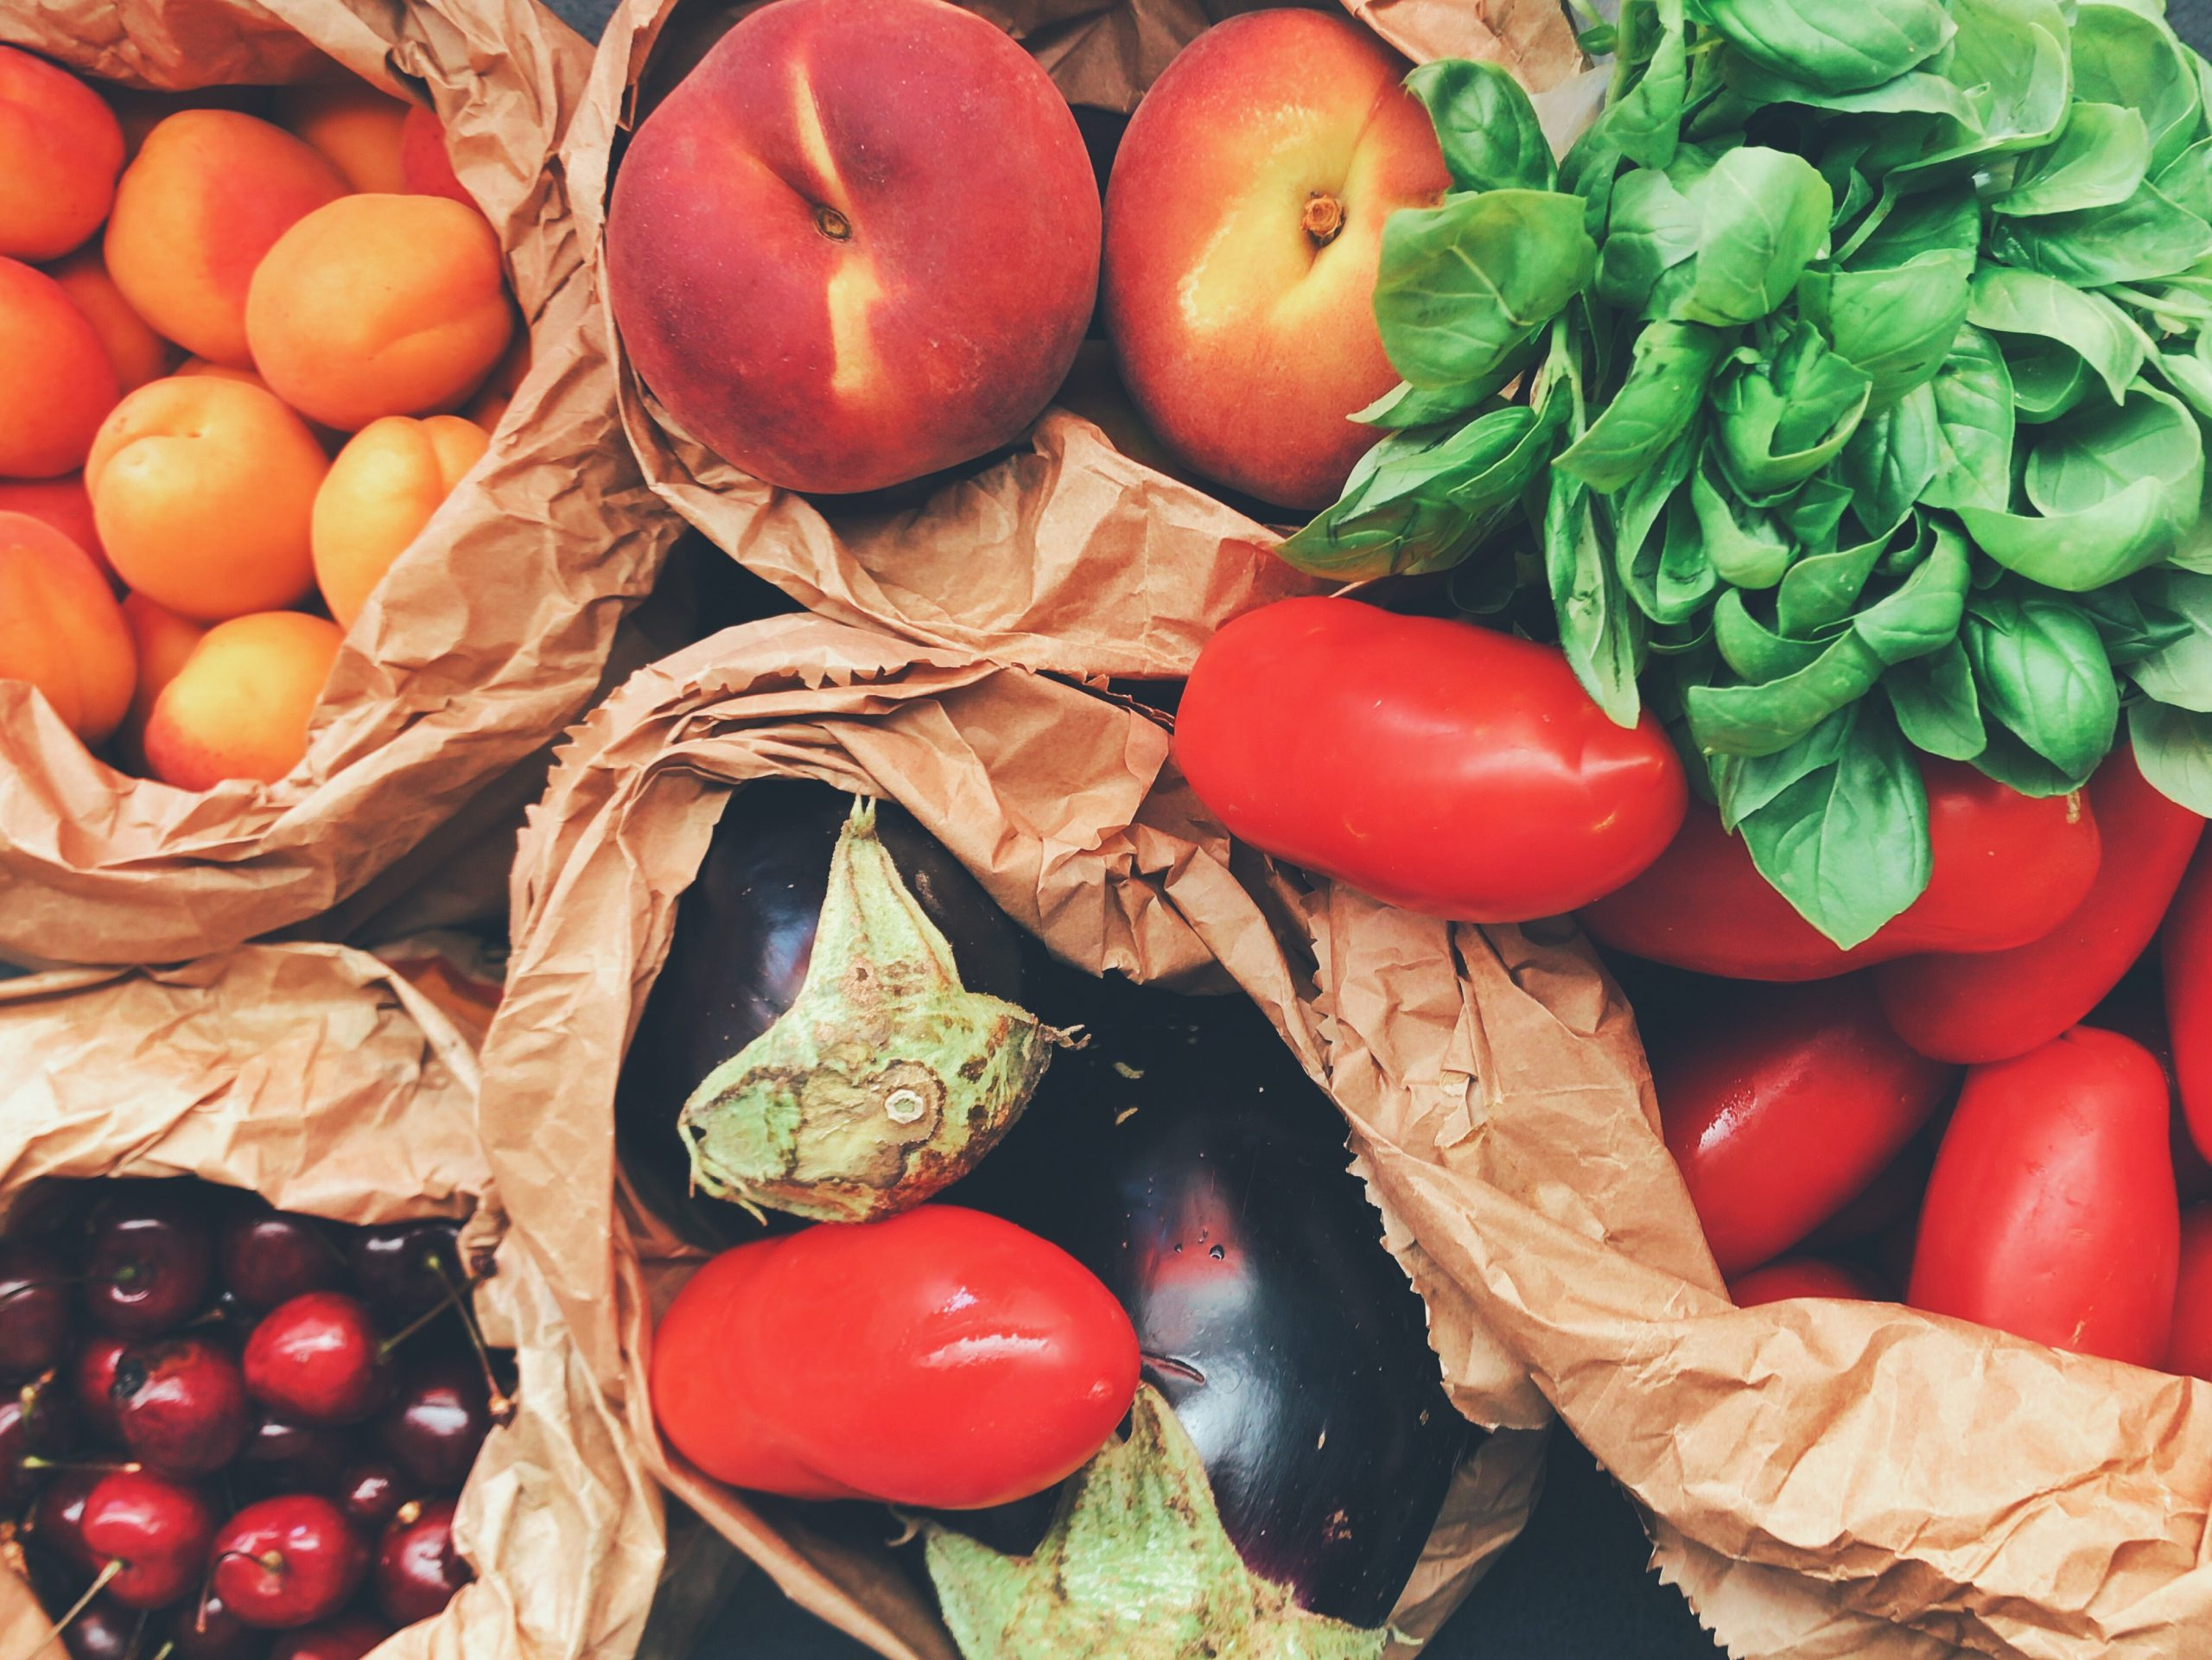 Fruits And Veggies In Brown Paper Bags